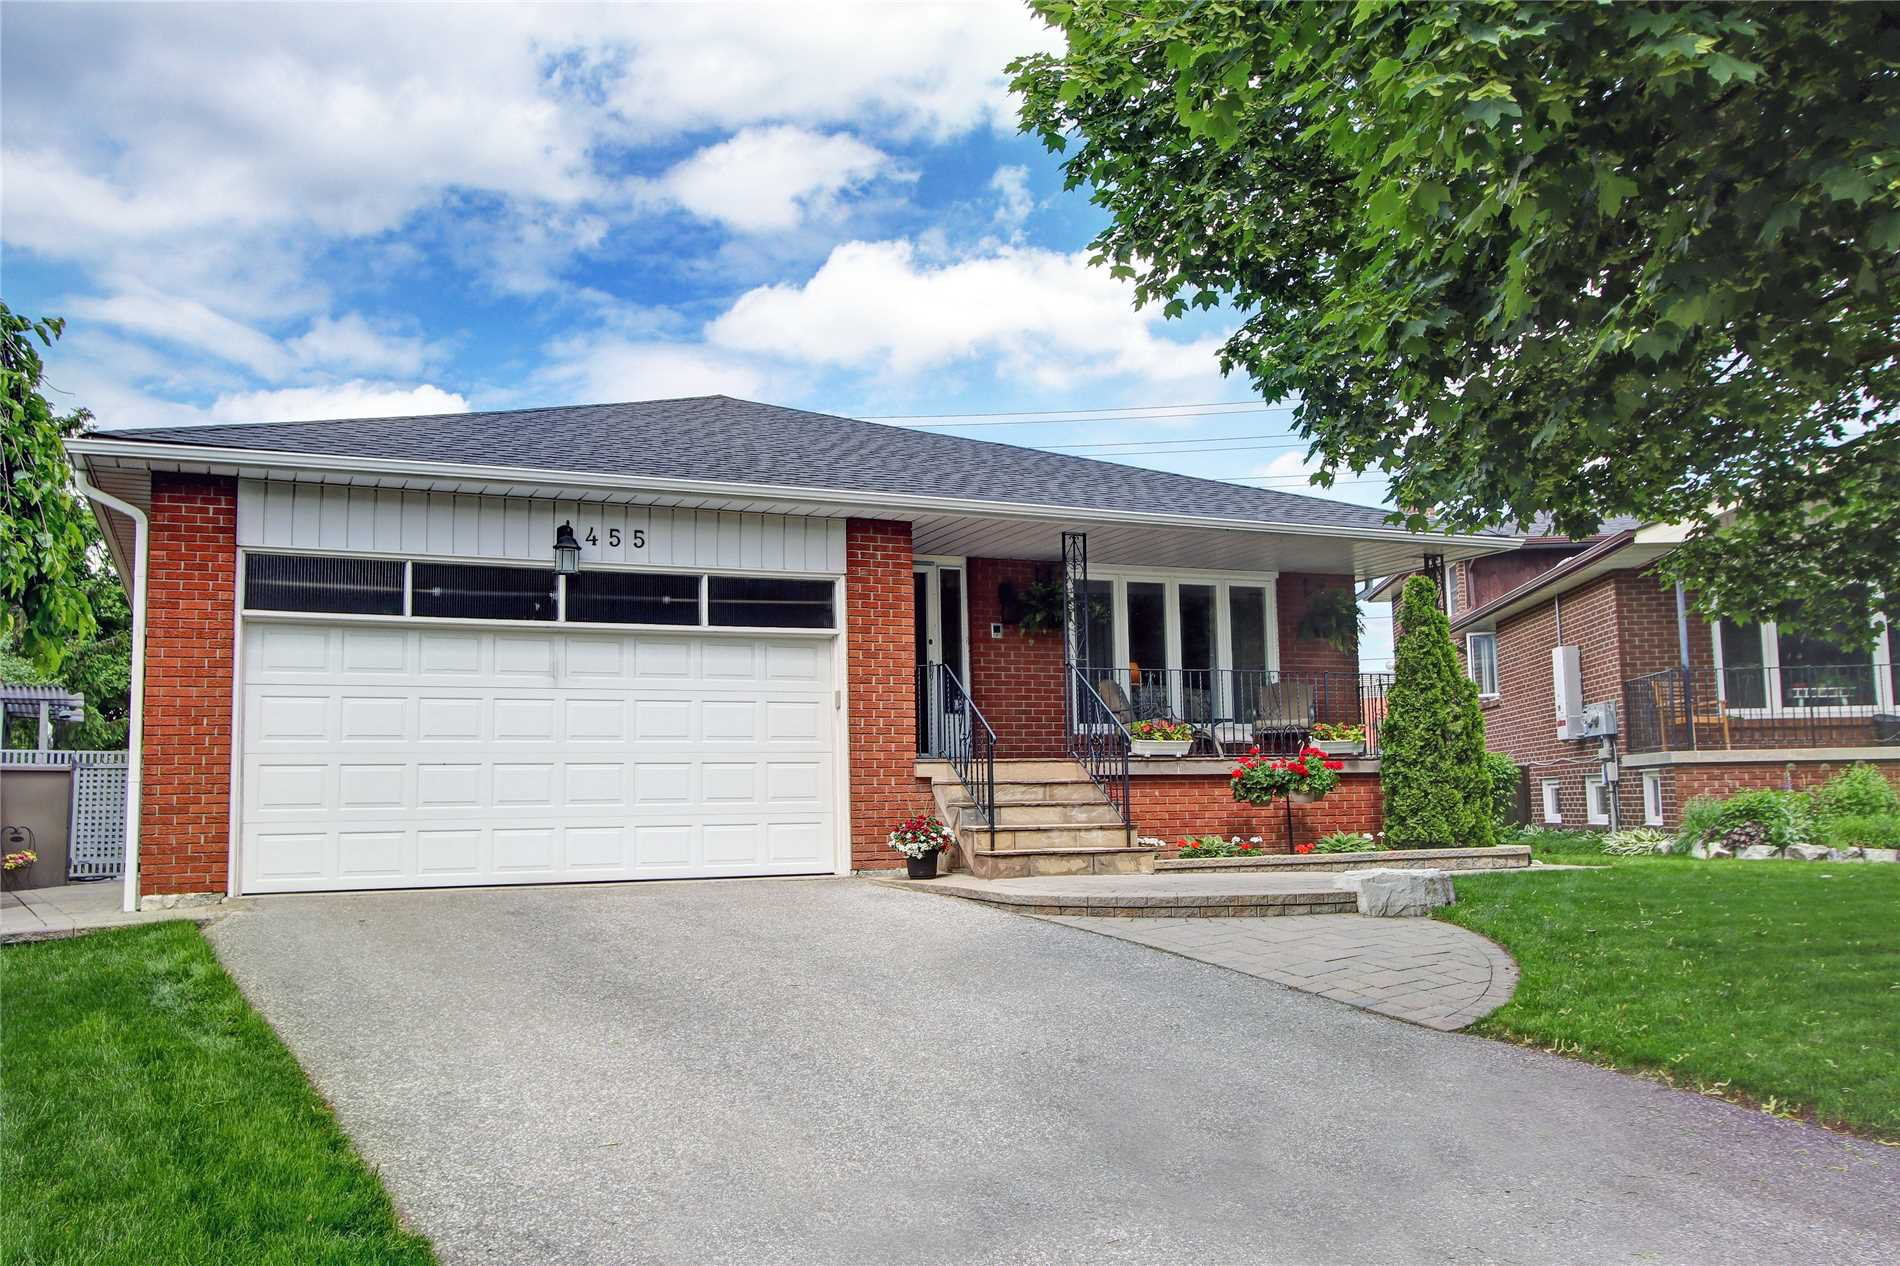 Main Photo: 455 Becker Rd in Richmond Hill: Freehold for sale : MLS®# N4487363